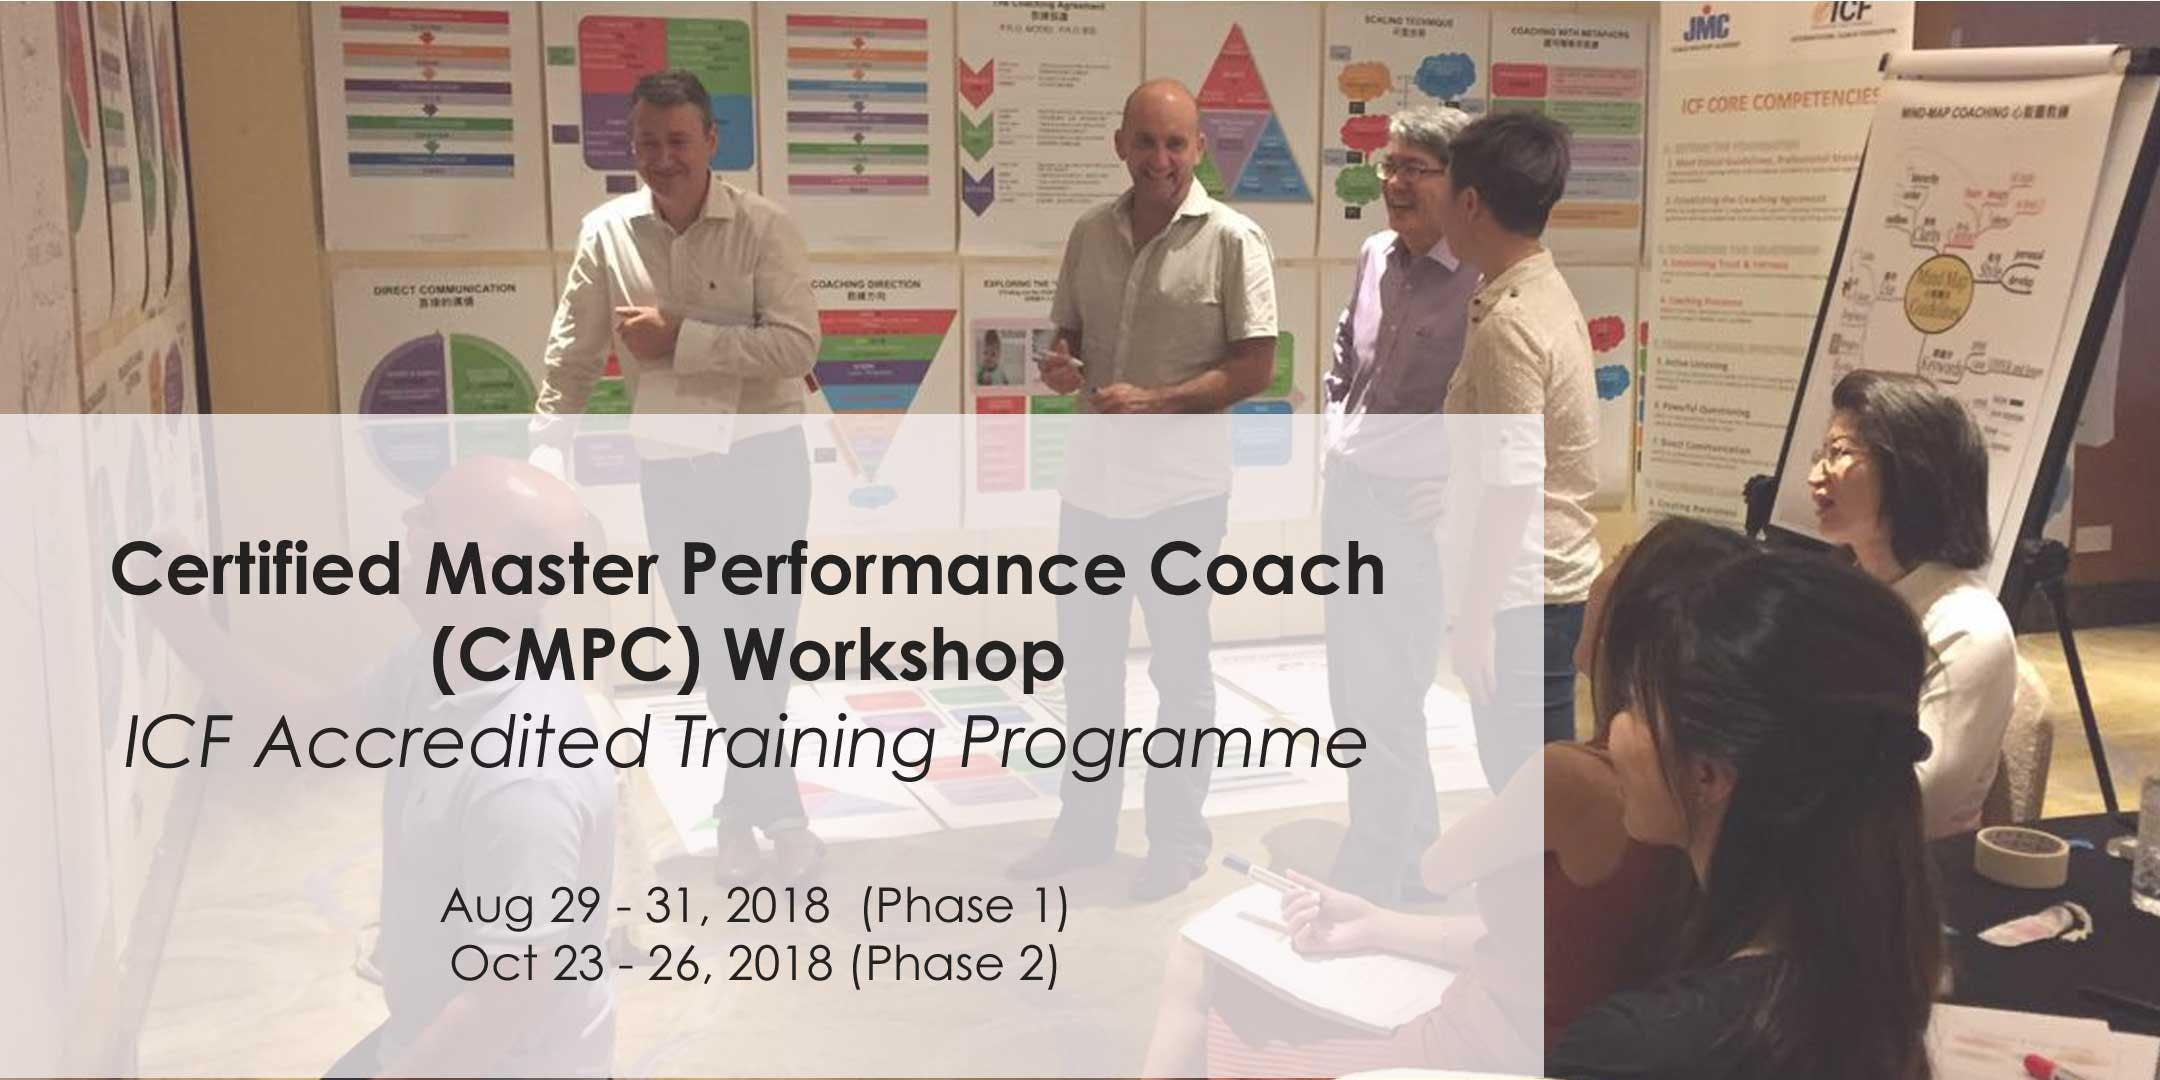 Coach Certification Programme For Professional Leadership Life